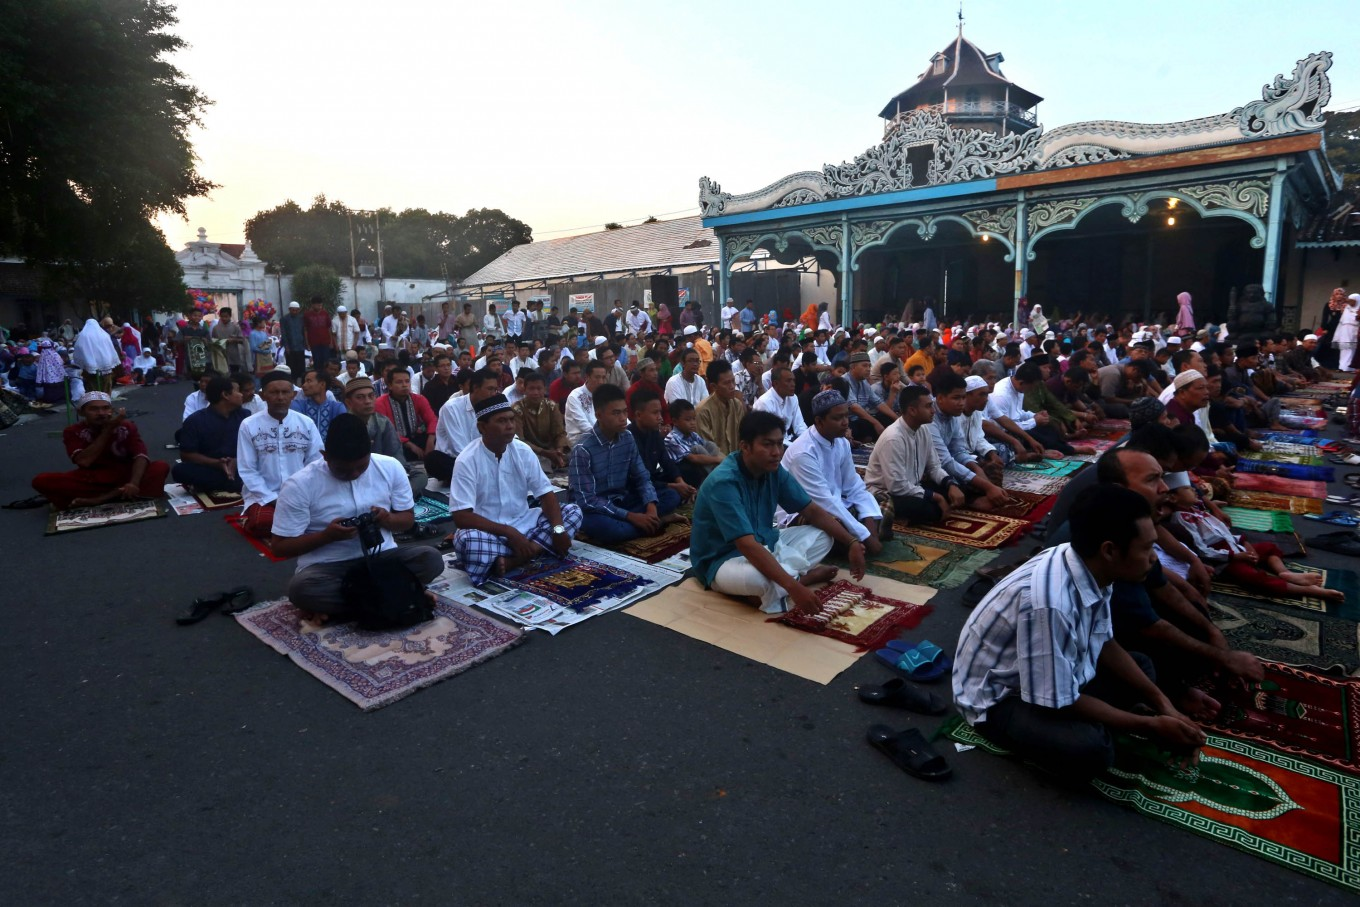 Thousands of residents participate in Idul Fitri prayers in front of the Palace of Surakarta, Central Java, on Wednesday. JP/ Ganug Nugroho Adi